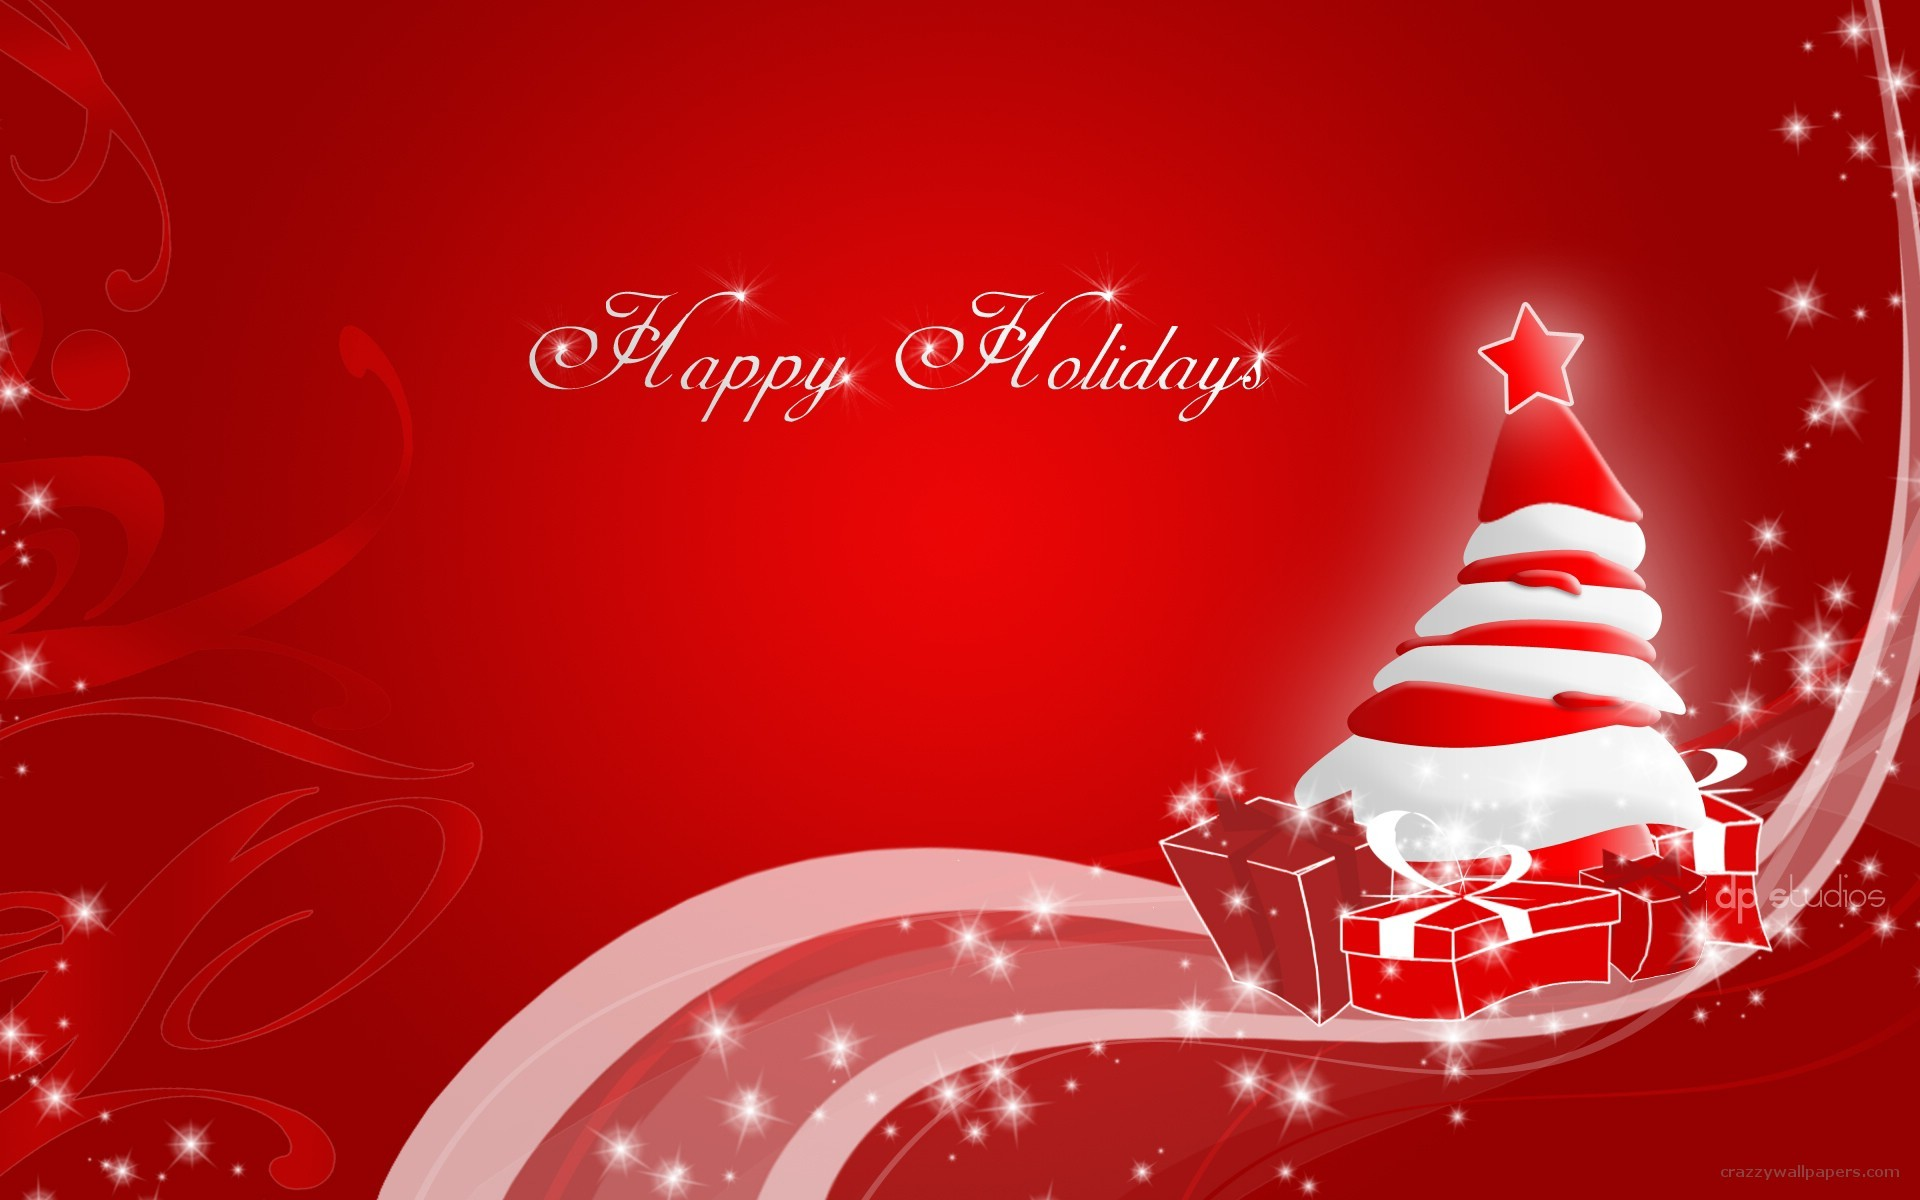 Happy Holidays Christmas Greetings Card.  Best_christmas_Pictures_HD_Christmas_Wallpapers_Desktop_Backgrounds_Christmas_Picture_Cards_12